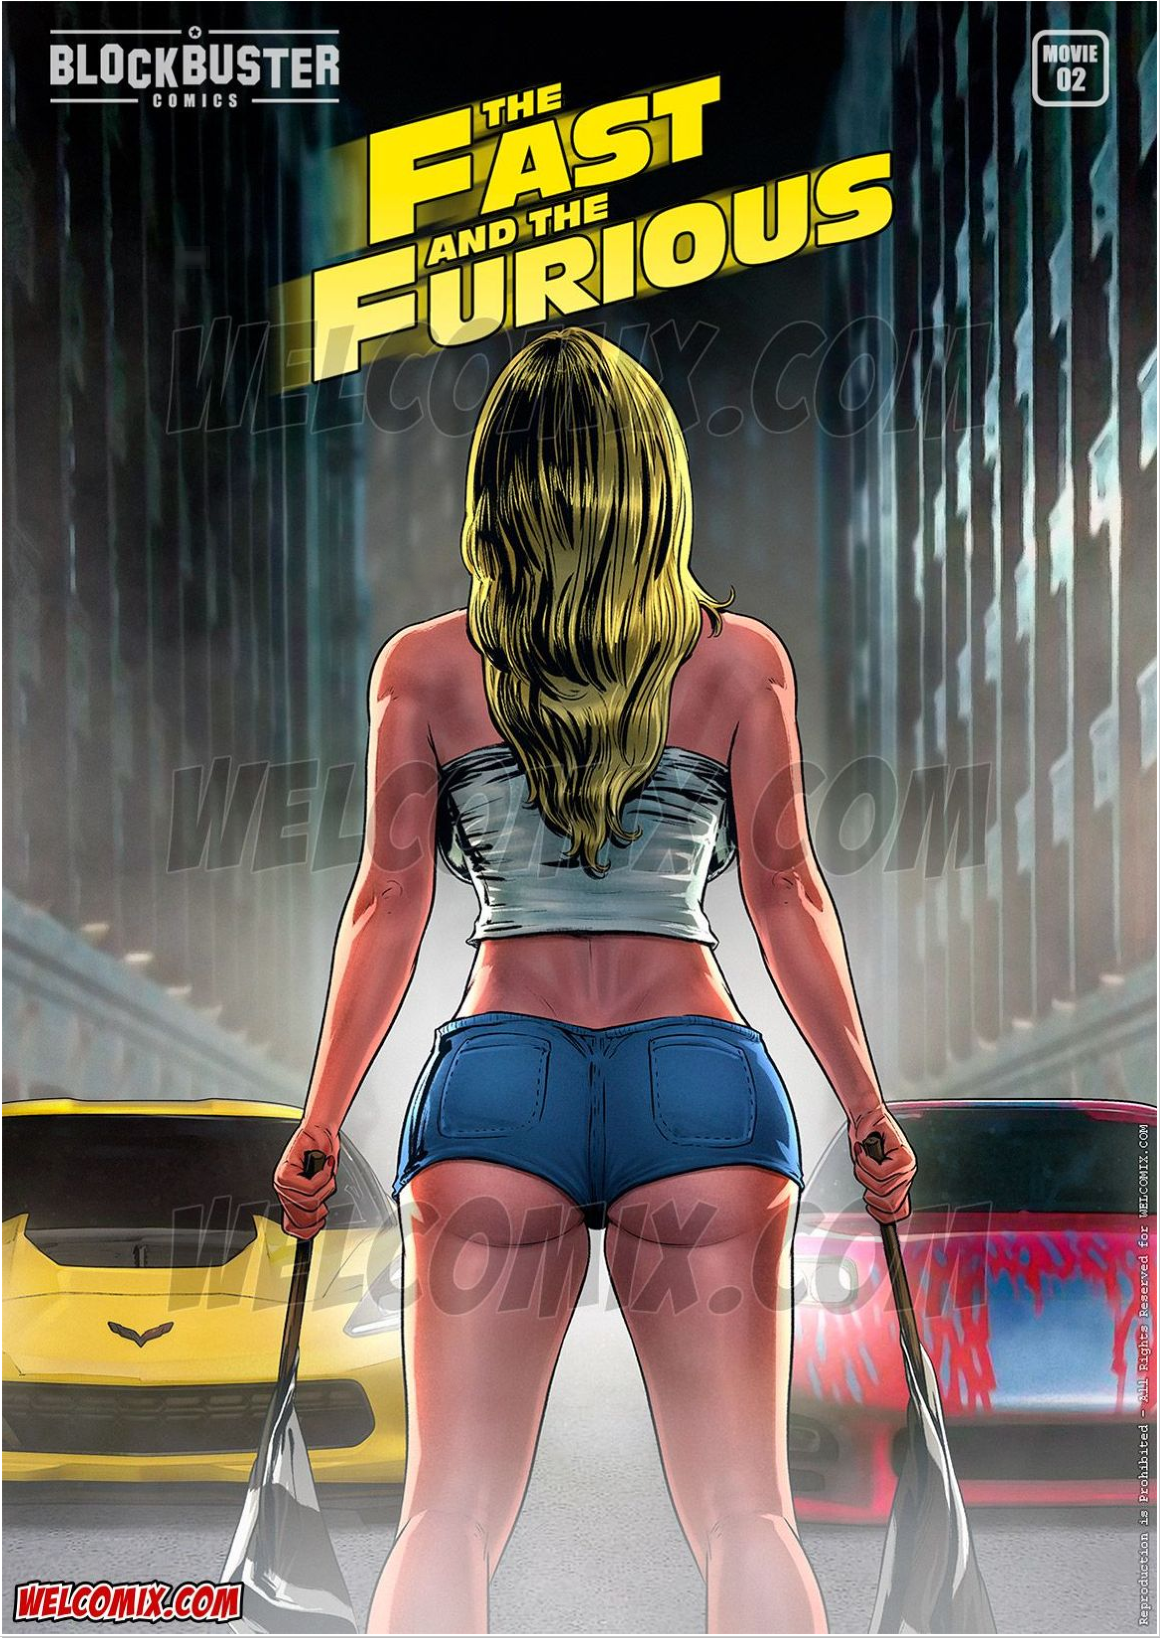 Goodcomix.tk The Fast and the Furious - [WelComix] - BlockBuster Comics 02 - The Fast and The Furious